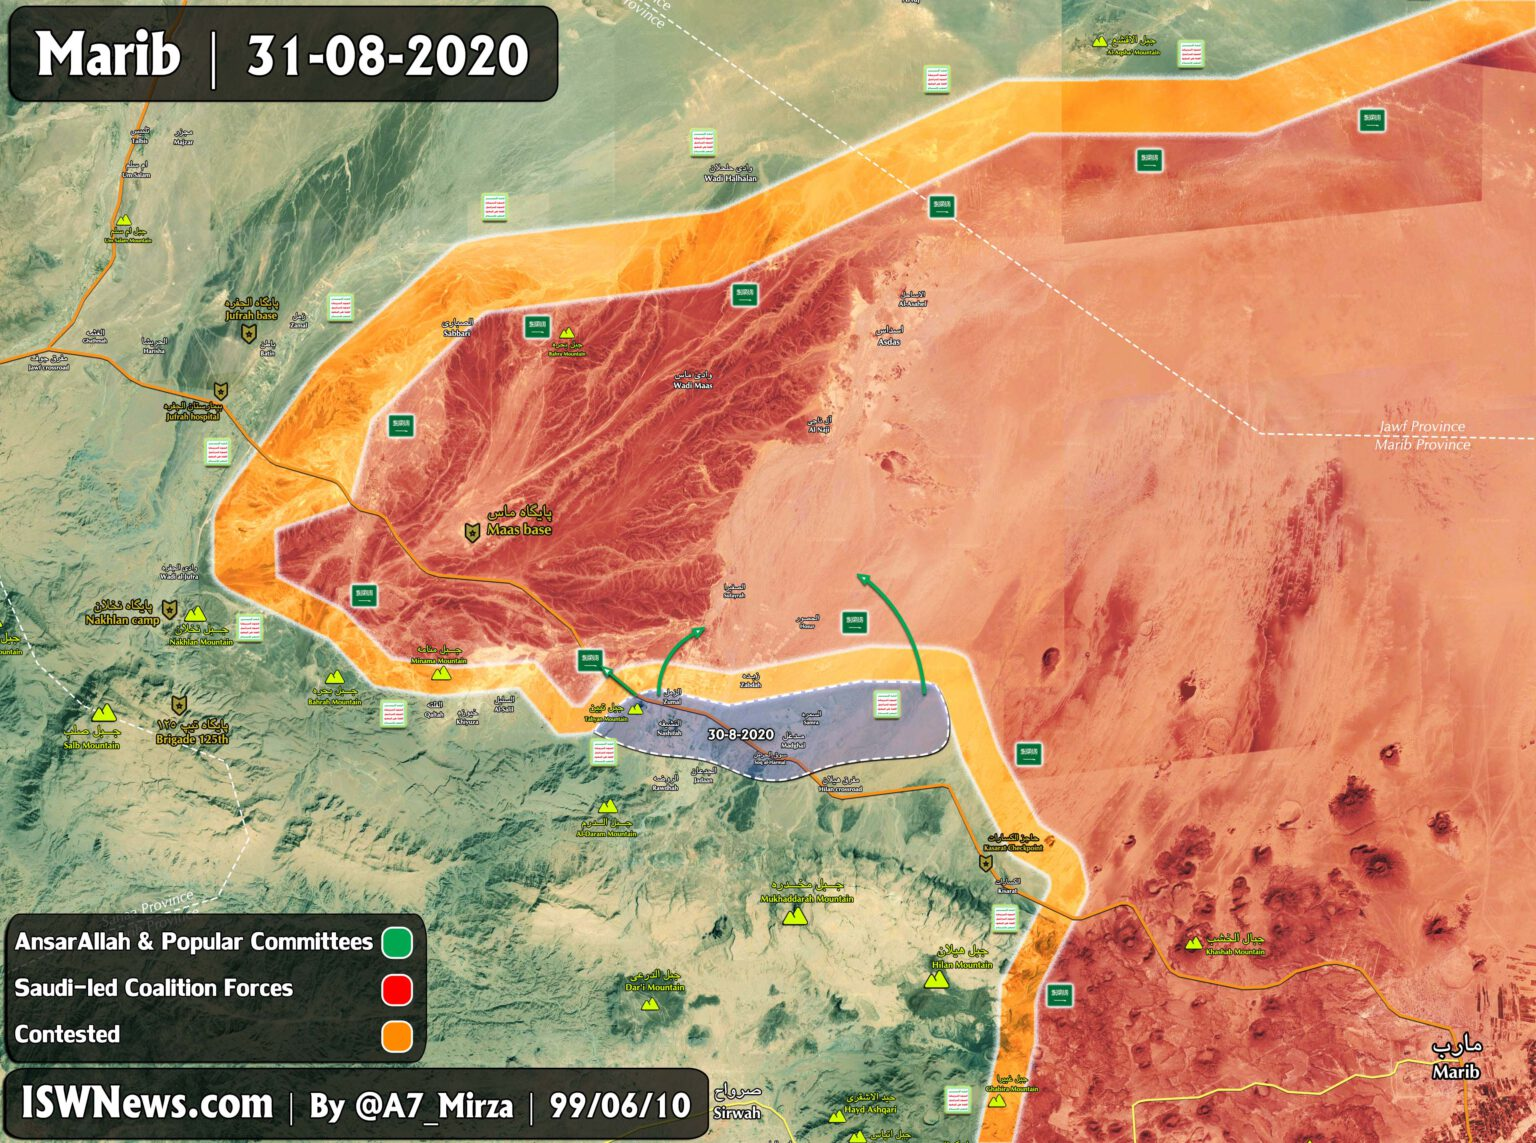 Houthis' Advance Continues: Strategic Territories Captured In Northern And Central Yemen